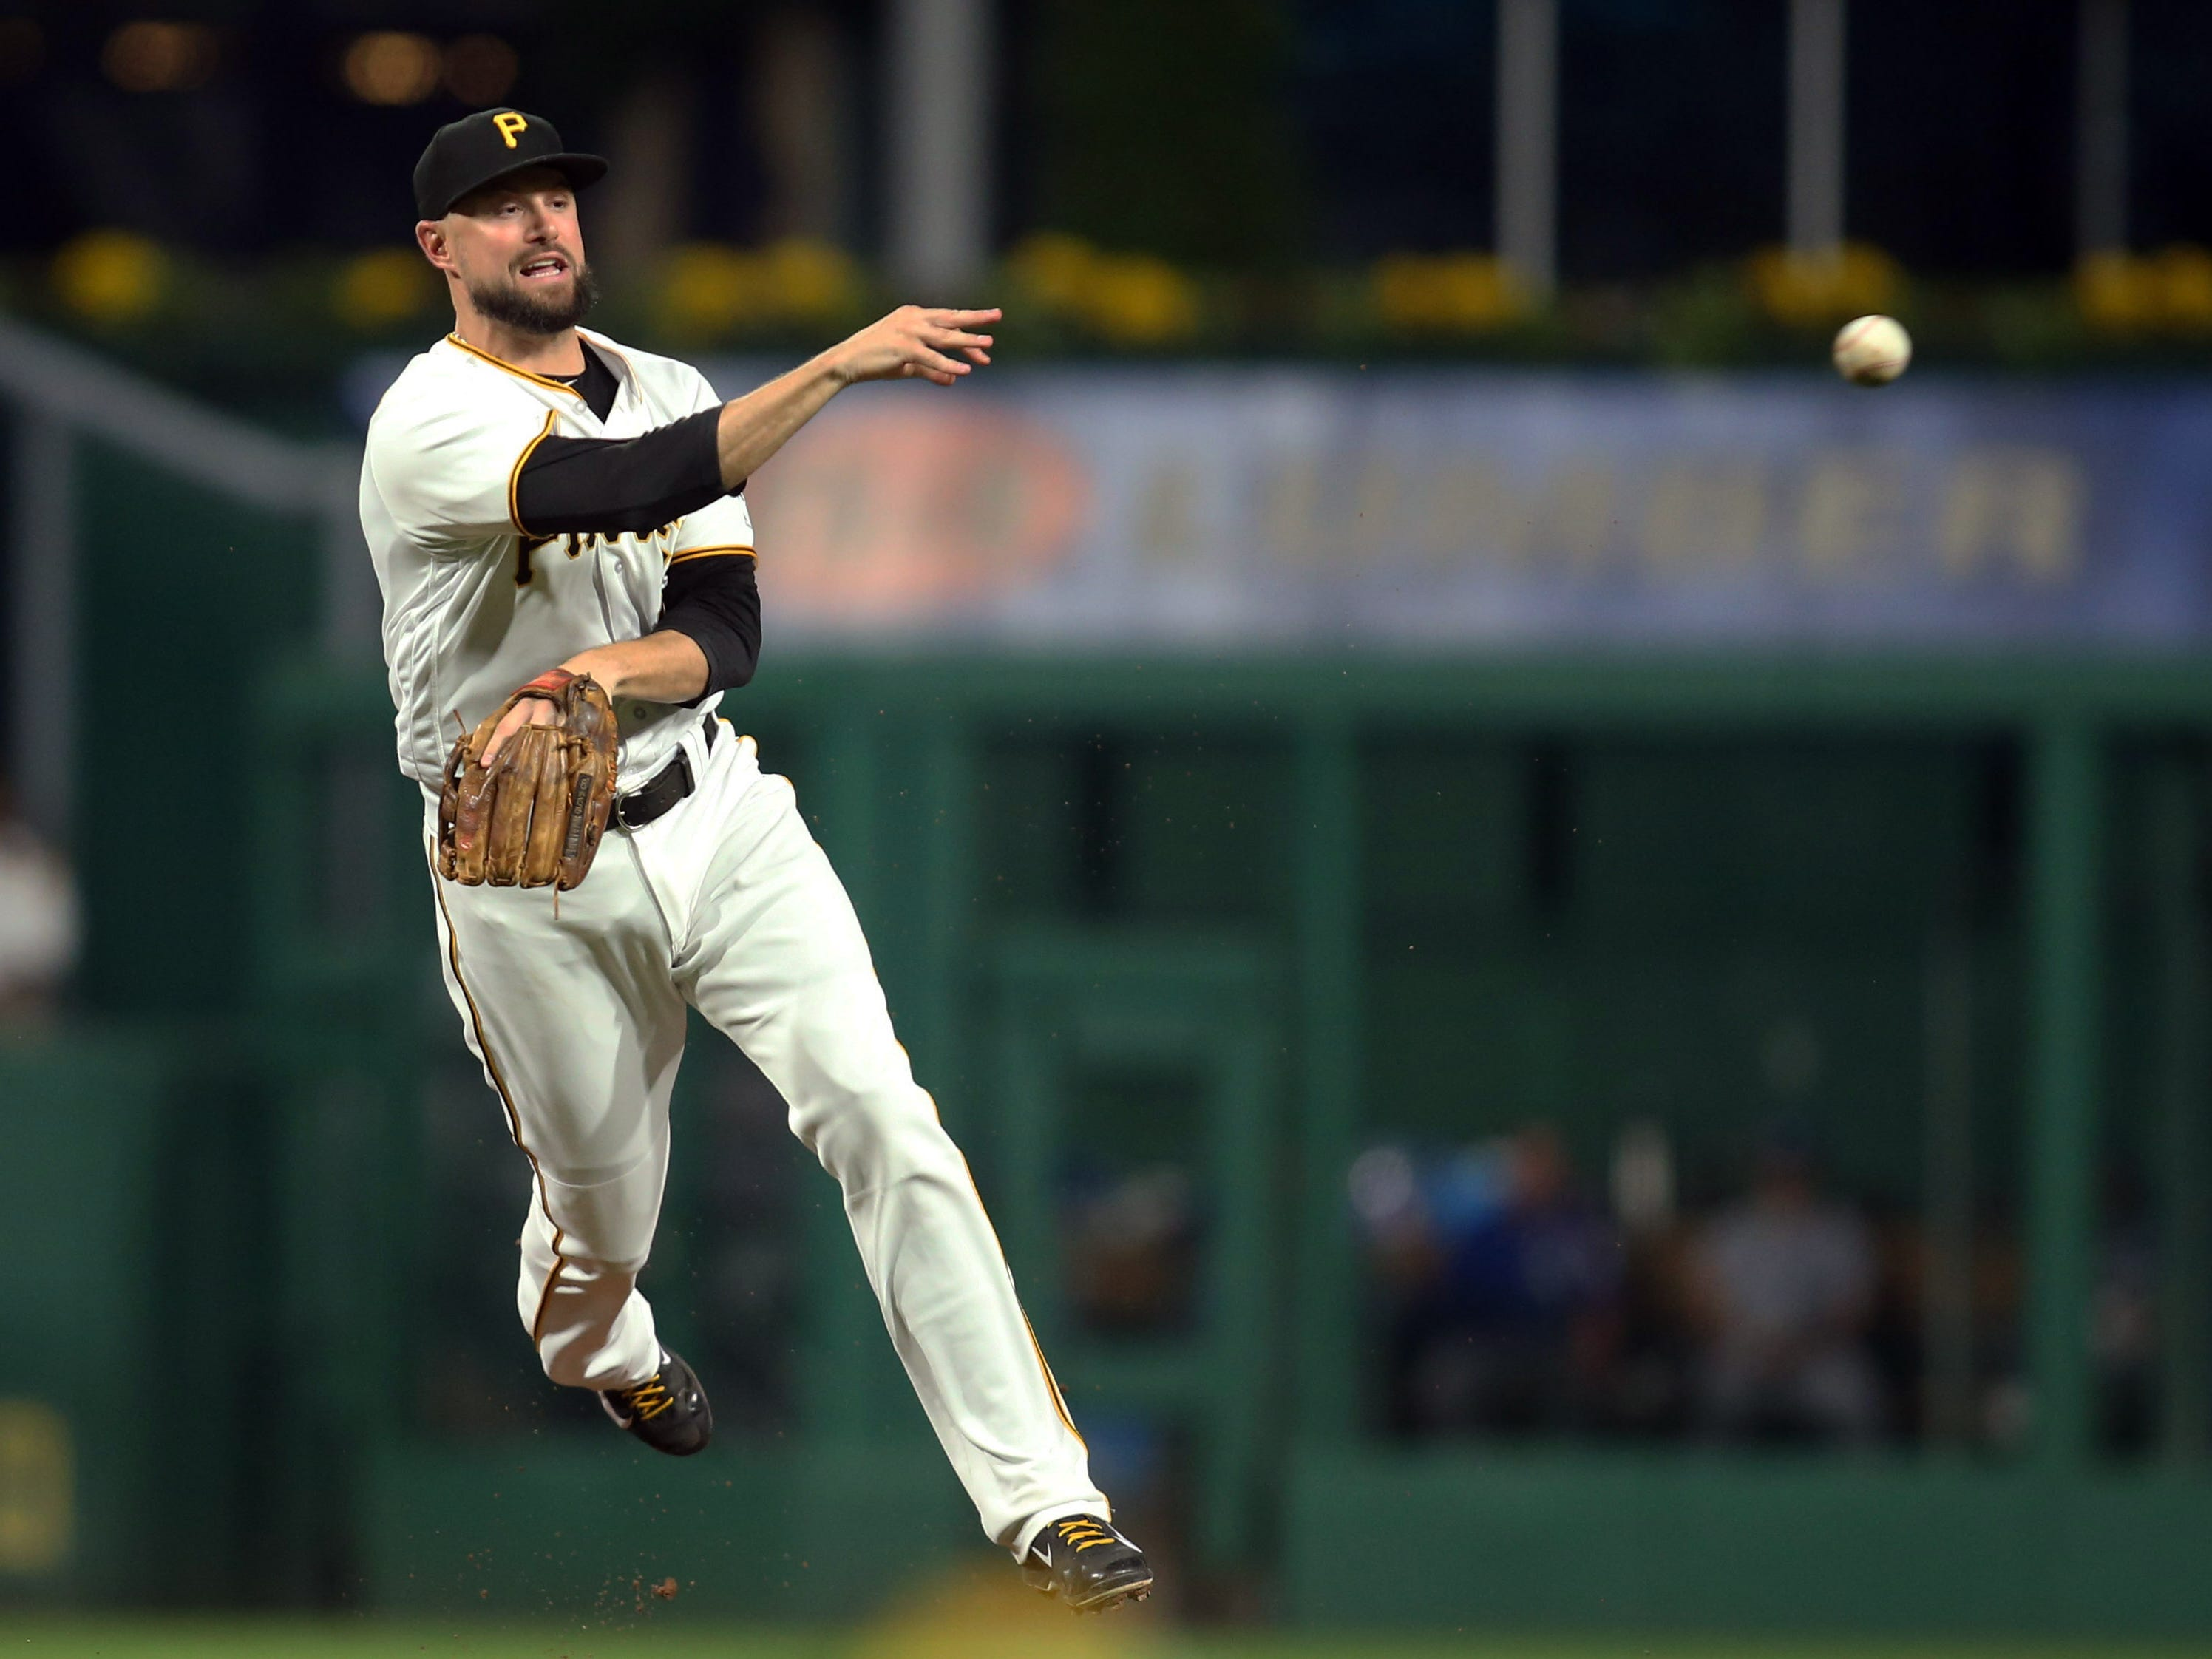 Pittsburgh Pirates shortstop Jordy Mercer throws to first base against the Kansas City Royals during the fourth inning at PNC Park, Sept. 18, 2018.